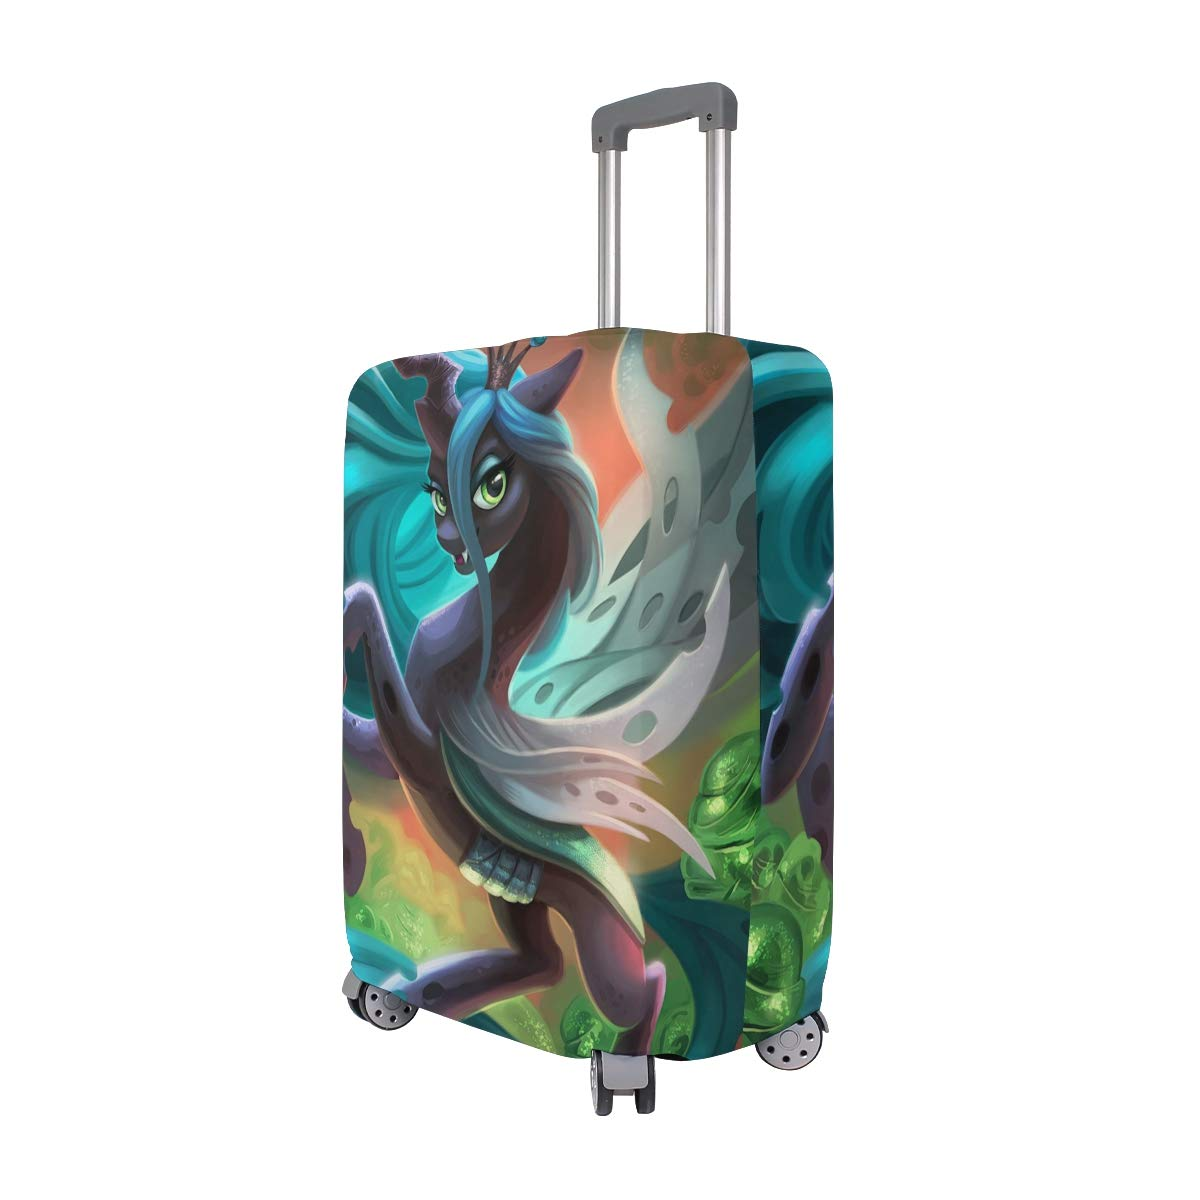 My Sweet Little Pony Forest Travel Luggage Cover Suitcase Protector Fits 26-28 Inch Washable Baggage Covers